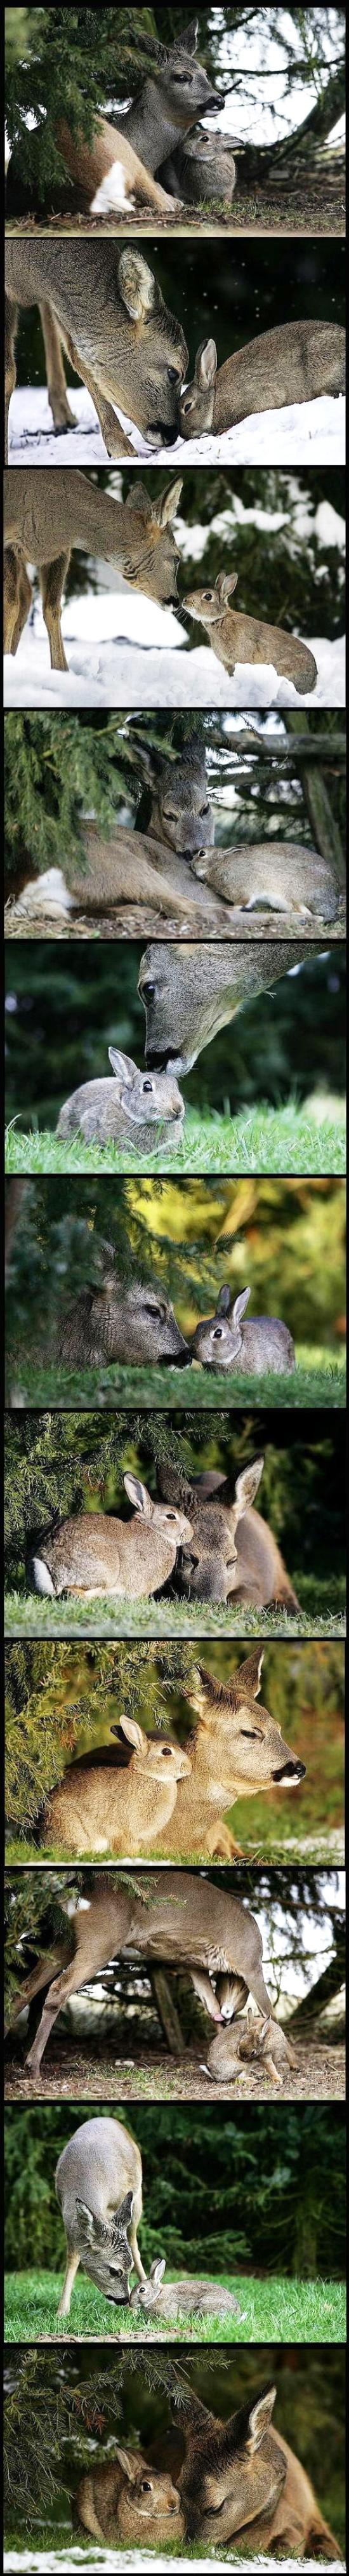 Bambi and Thumper Friends Picture